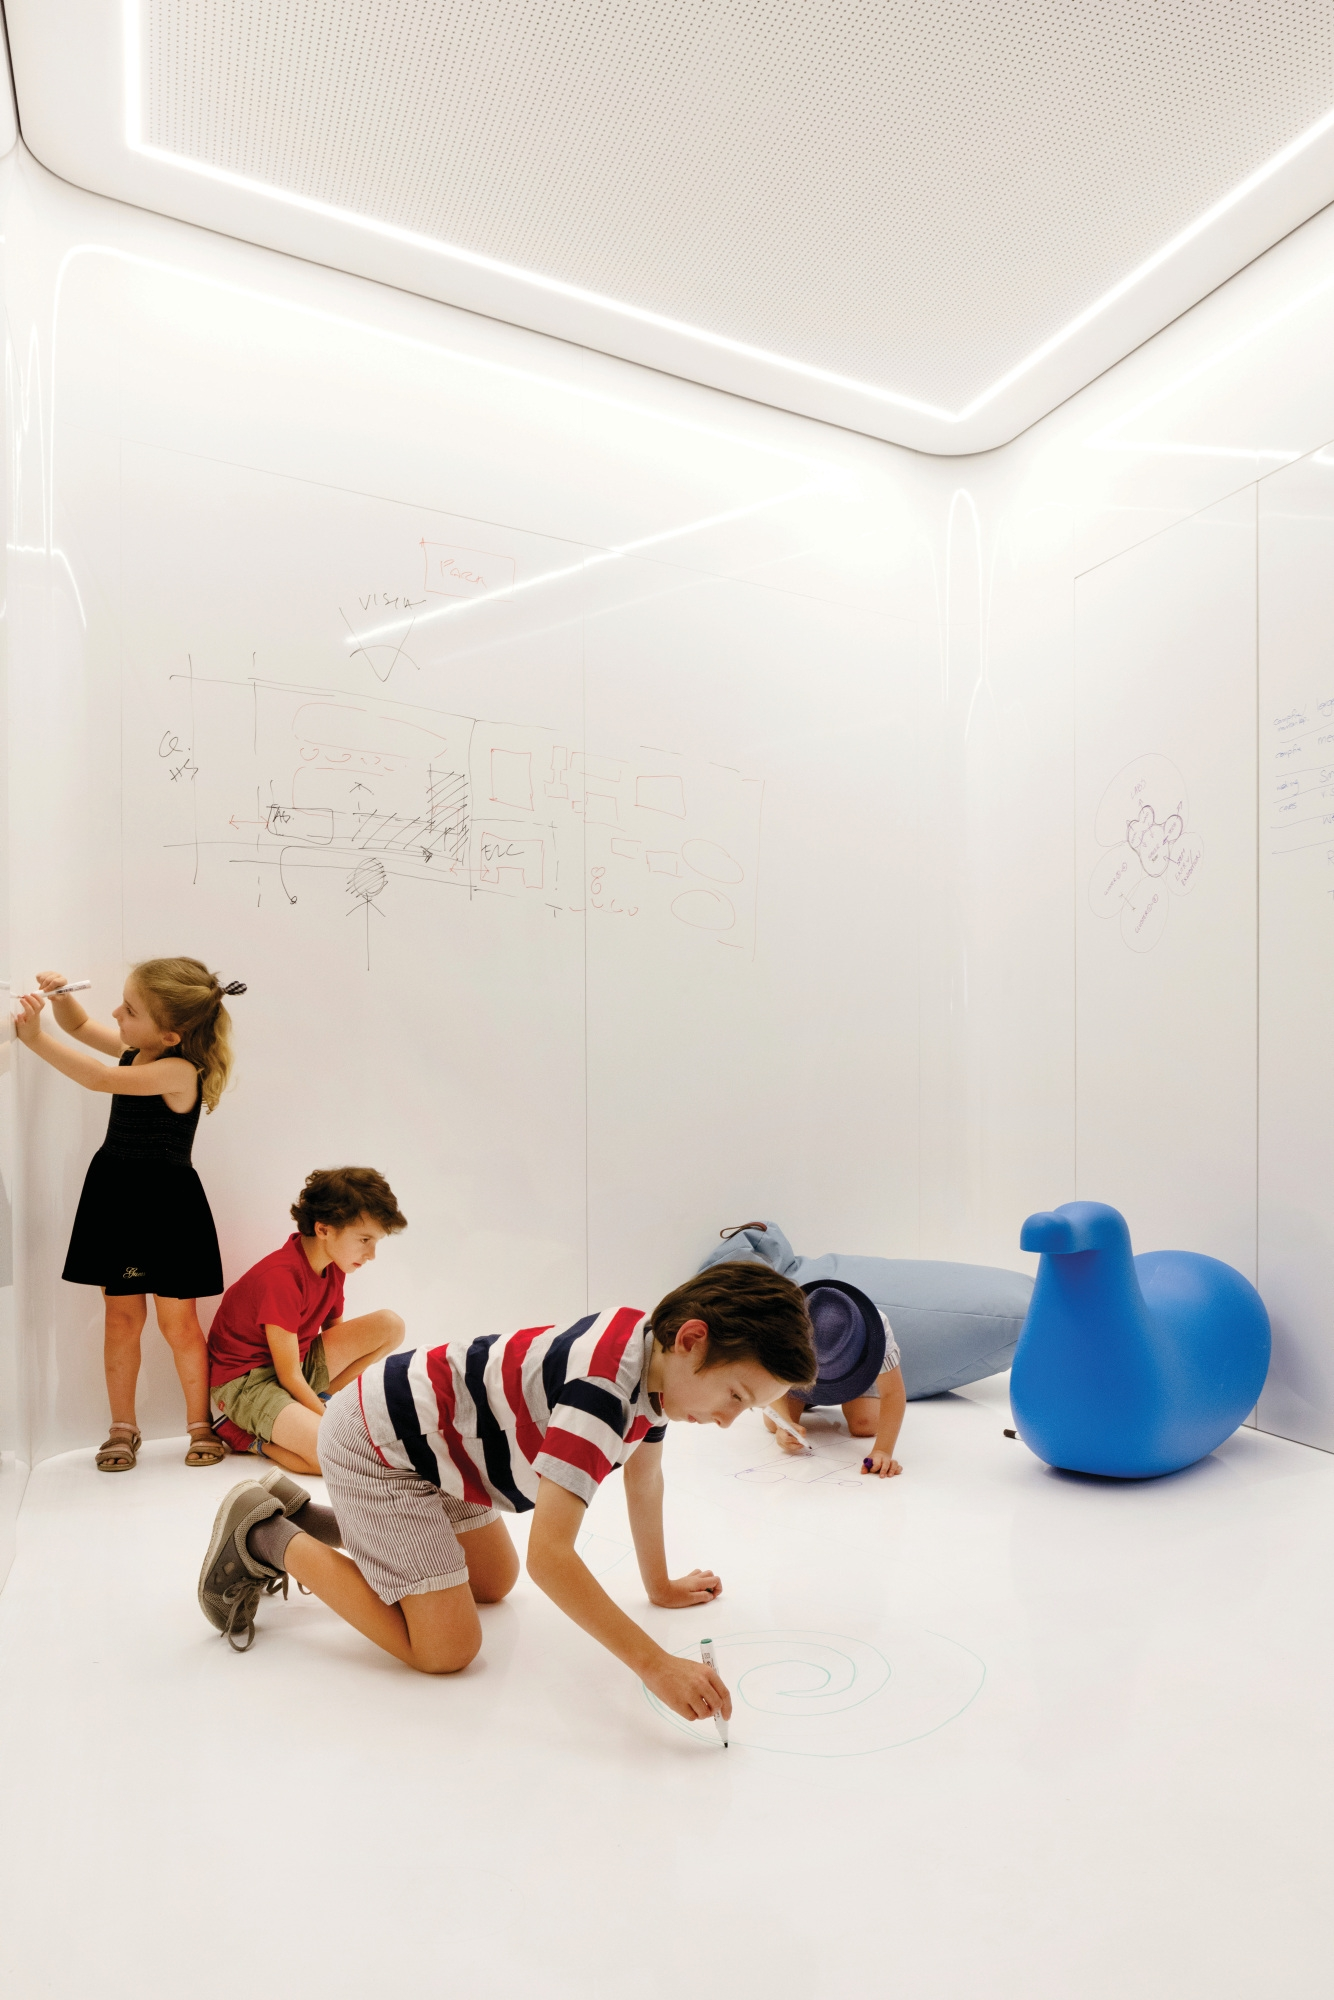 White room with children drawing on walls and floor.